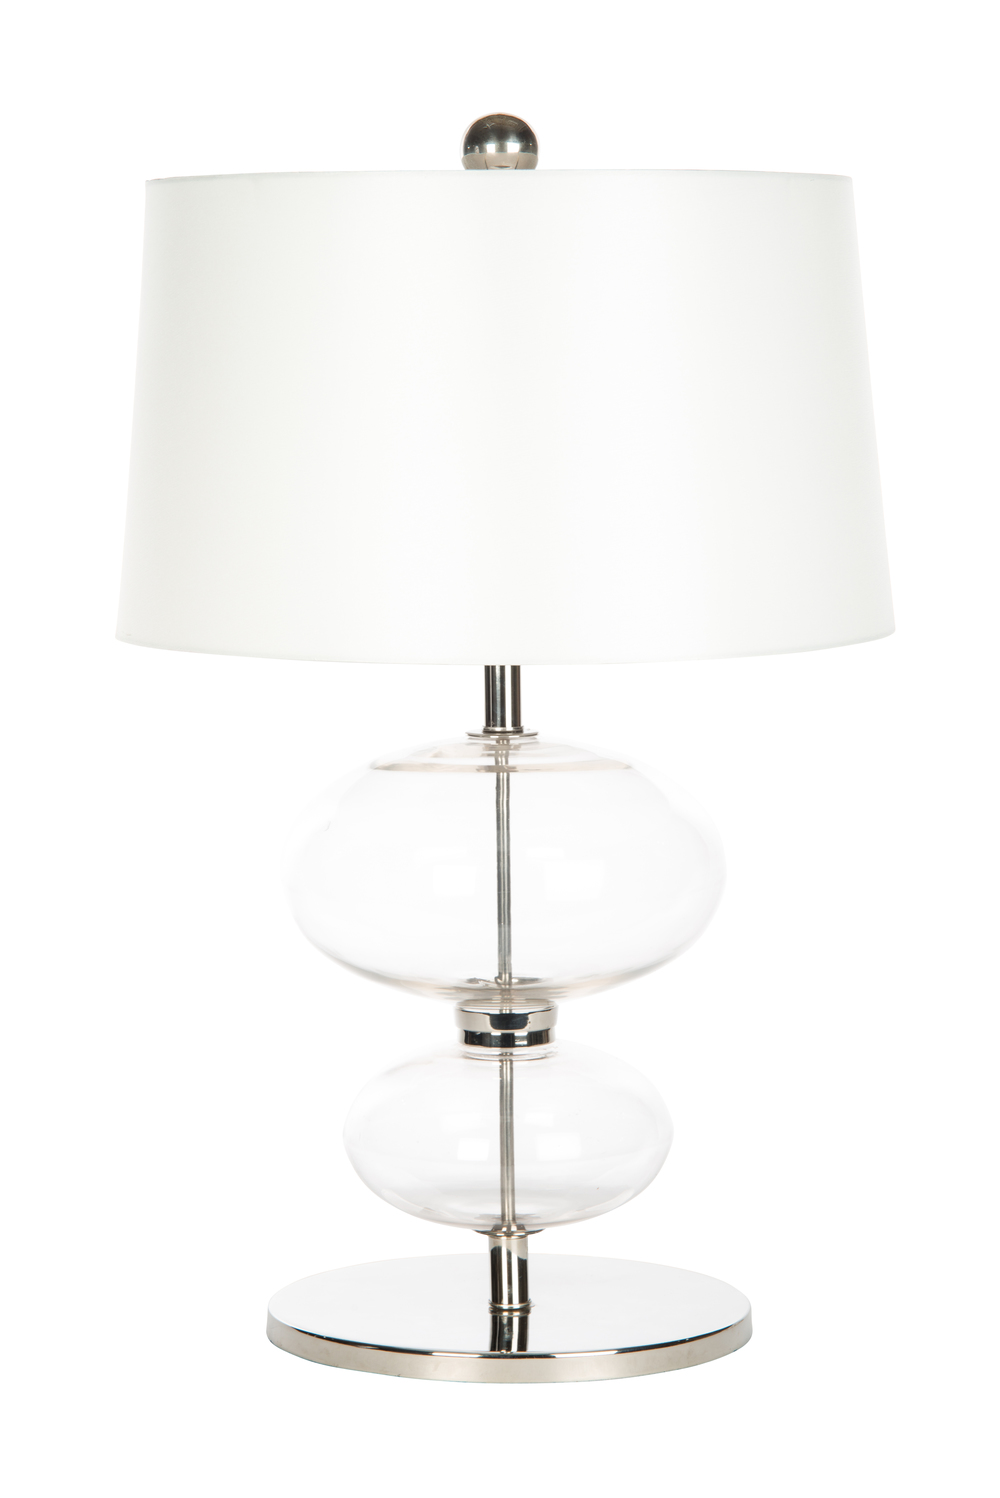 Blair Lamp